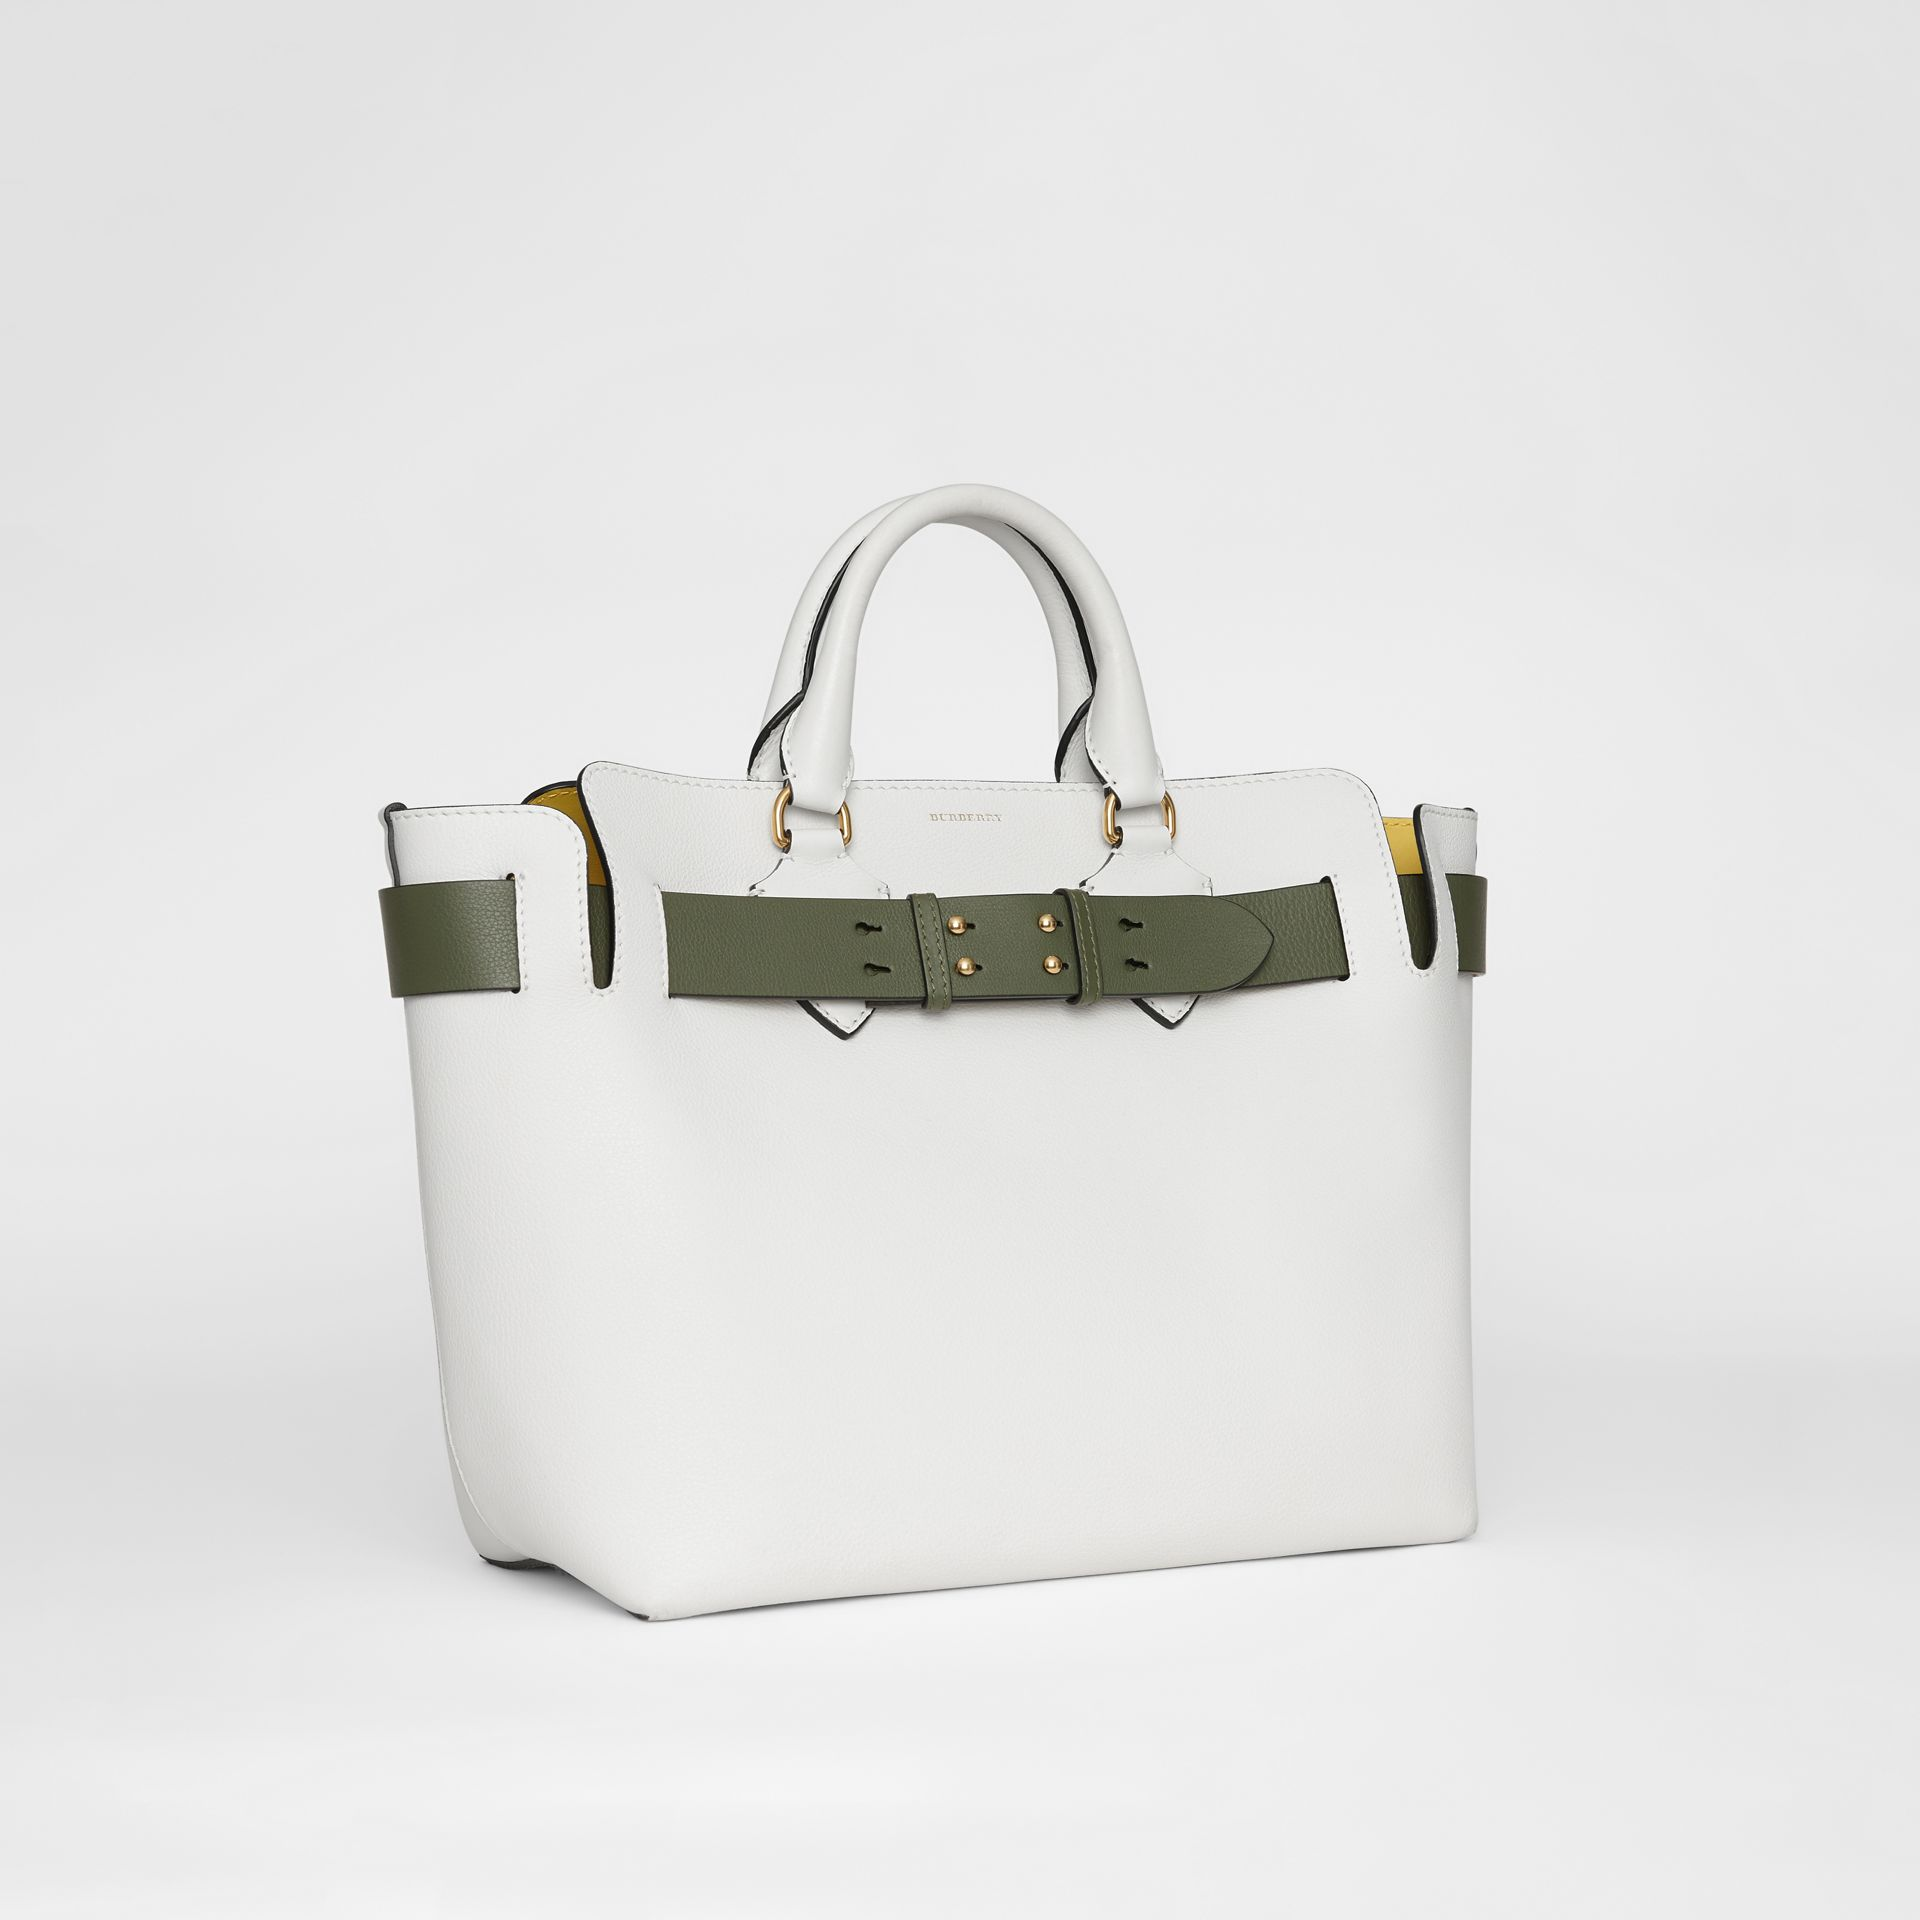 Sac The Belt moyen en cuir (Blanc Craie) - Femme | Burberry - photo de la galerie 6